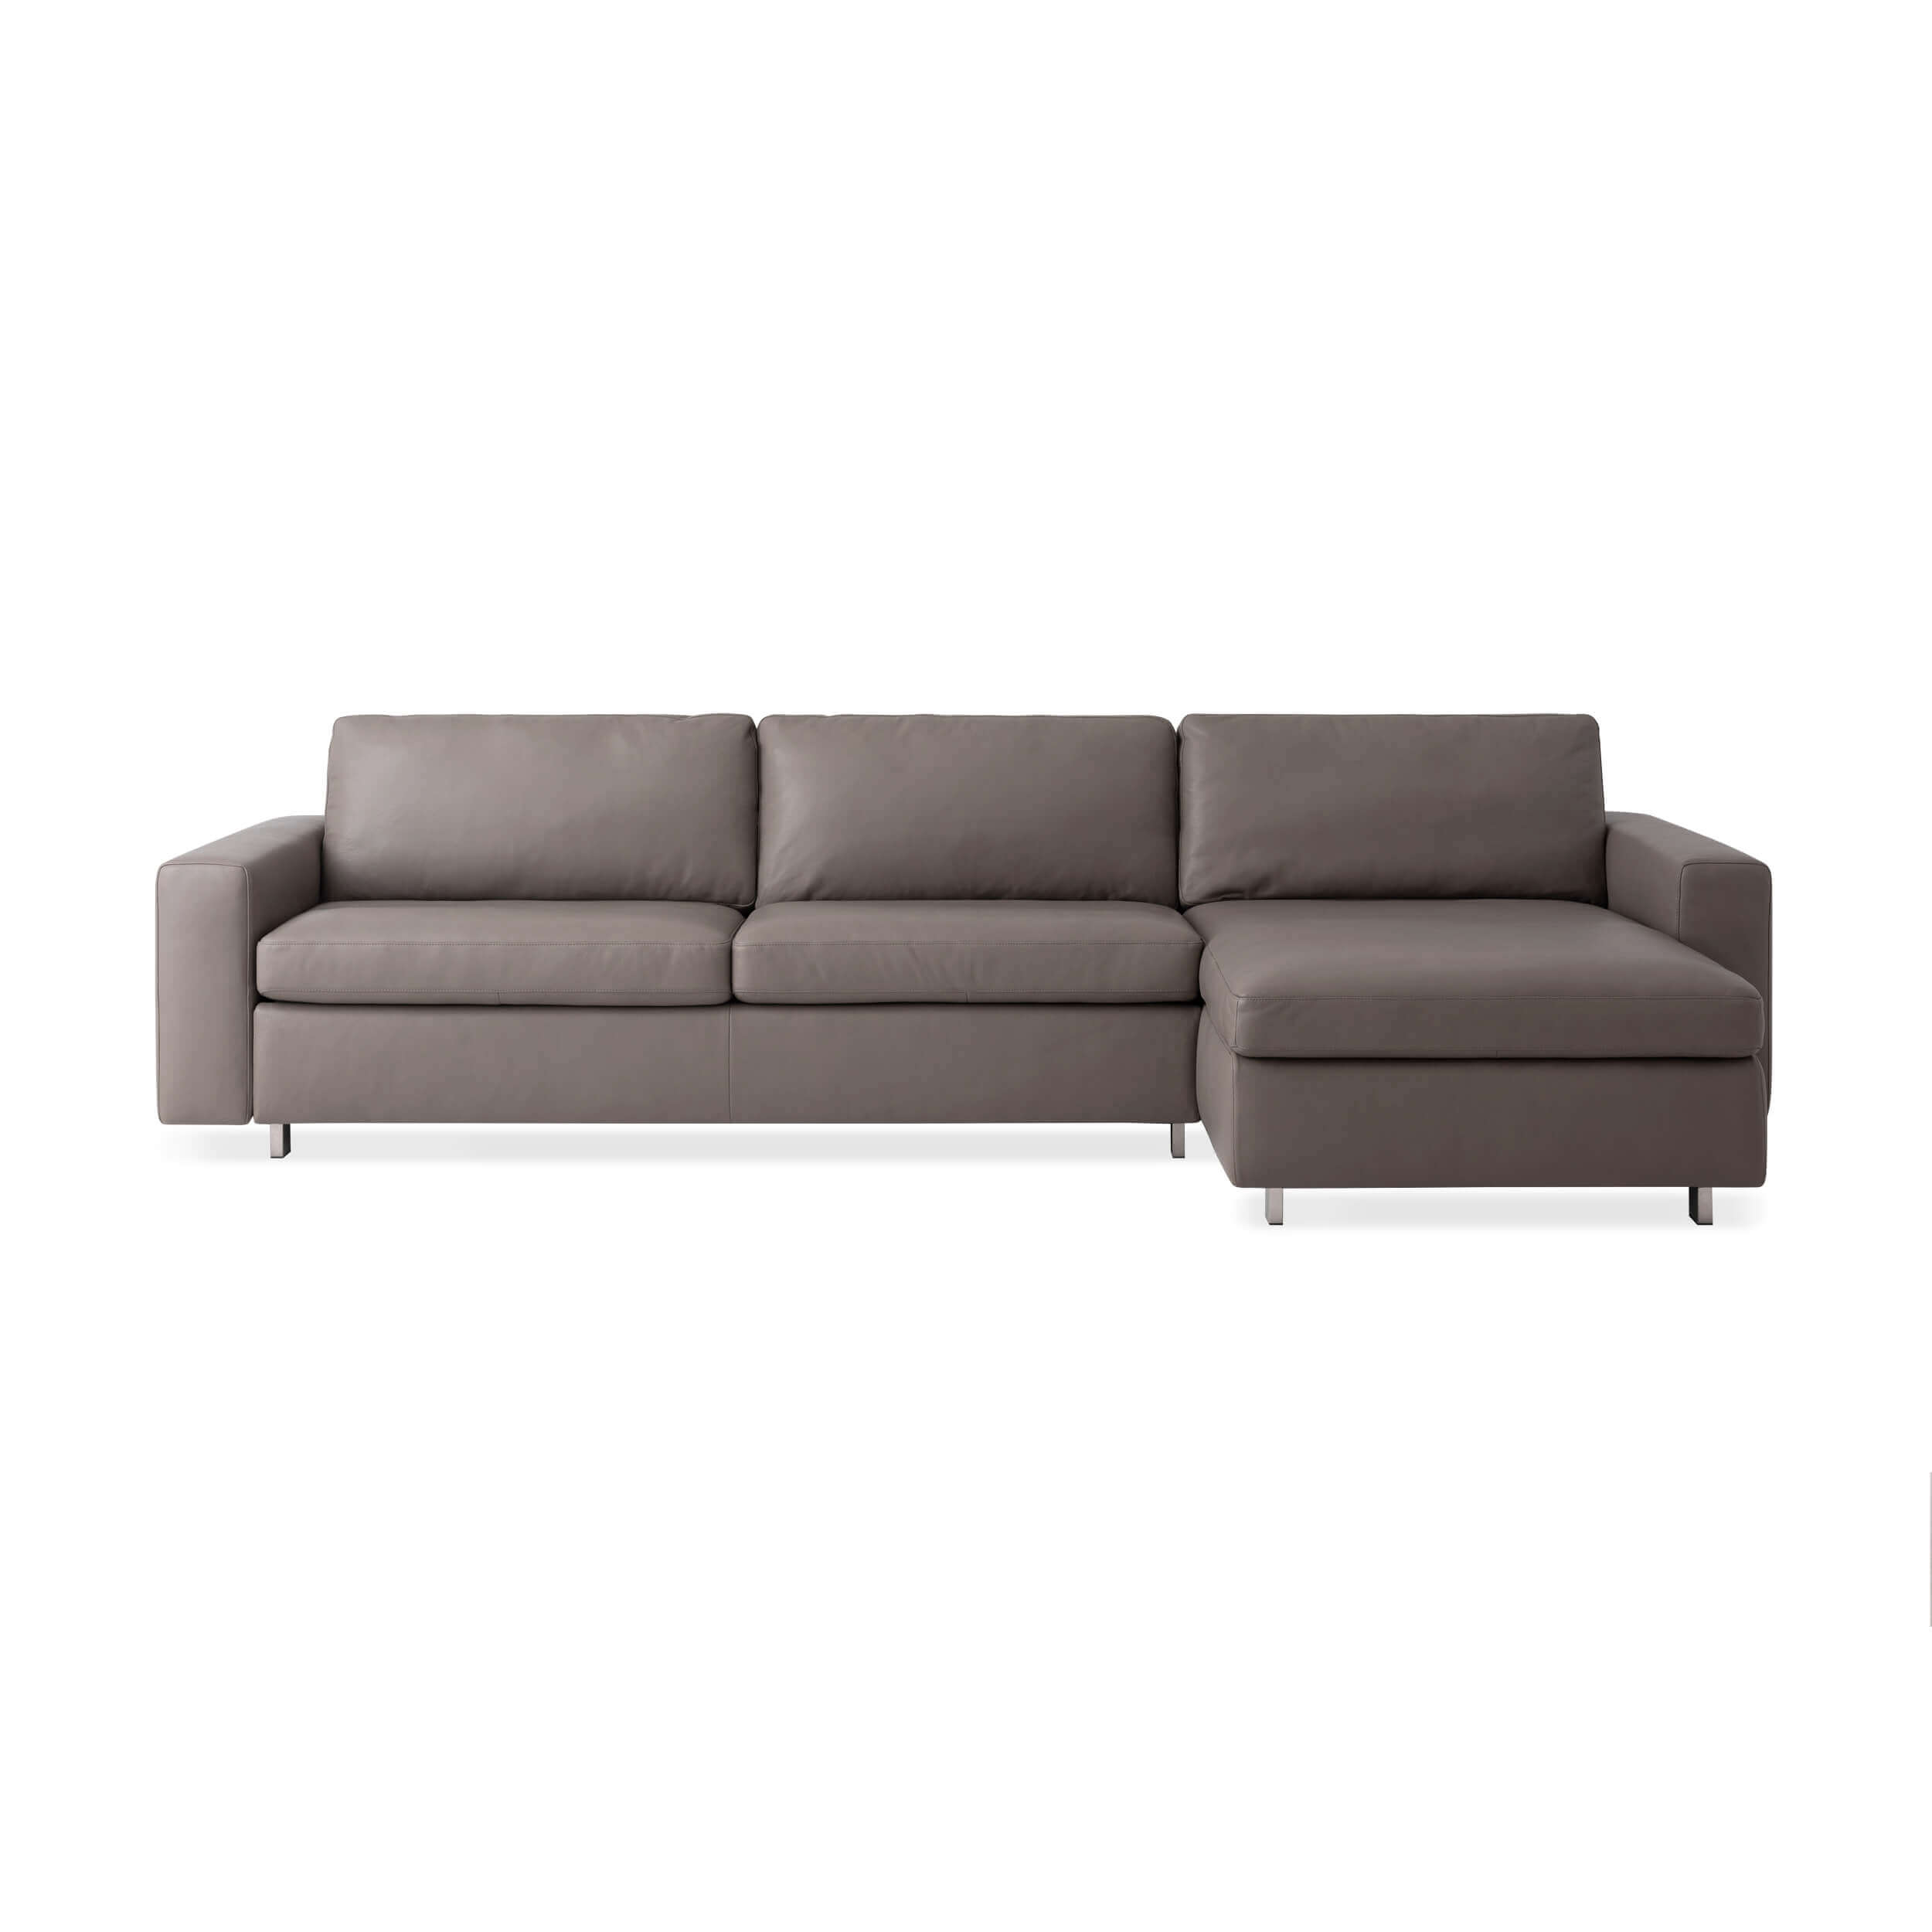 Brilliant Reva 2 Piece Sectional Sleeper Sofa With Storage Chaise Leather Pdpeps Interior Chair Design Pdpepsorg